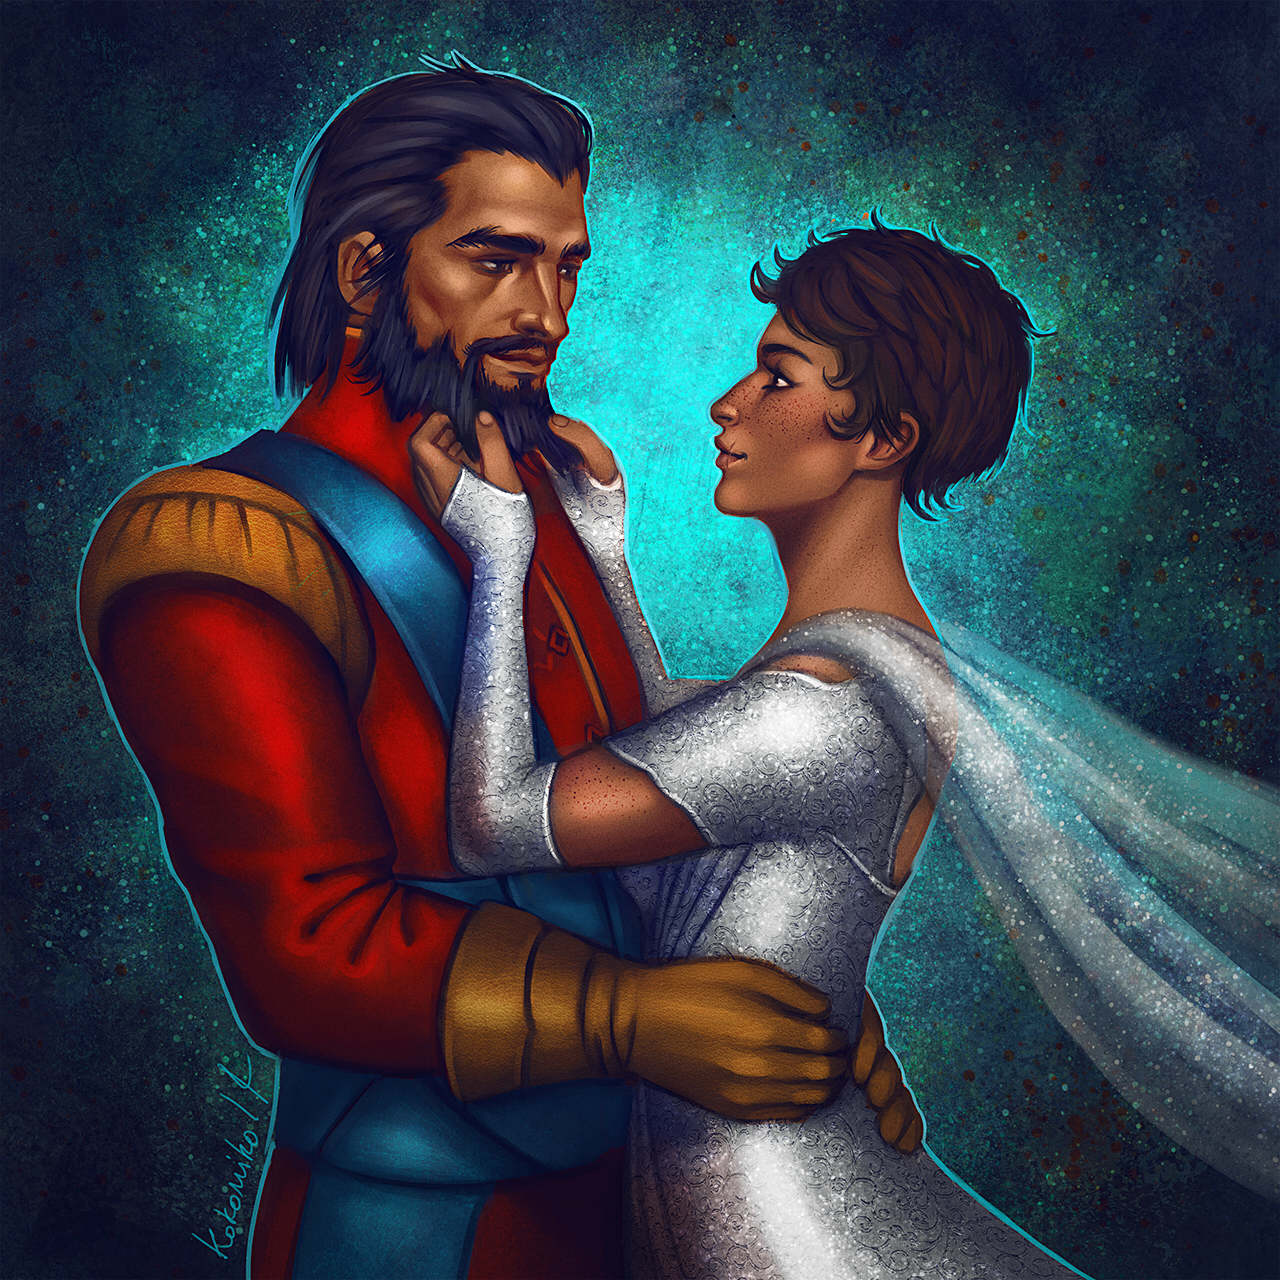 needlesslycryptic: Ylva Trevelyan and Blackwall, for lovely looktothehorizon, thank you so much for commissioning me again!